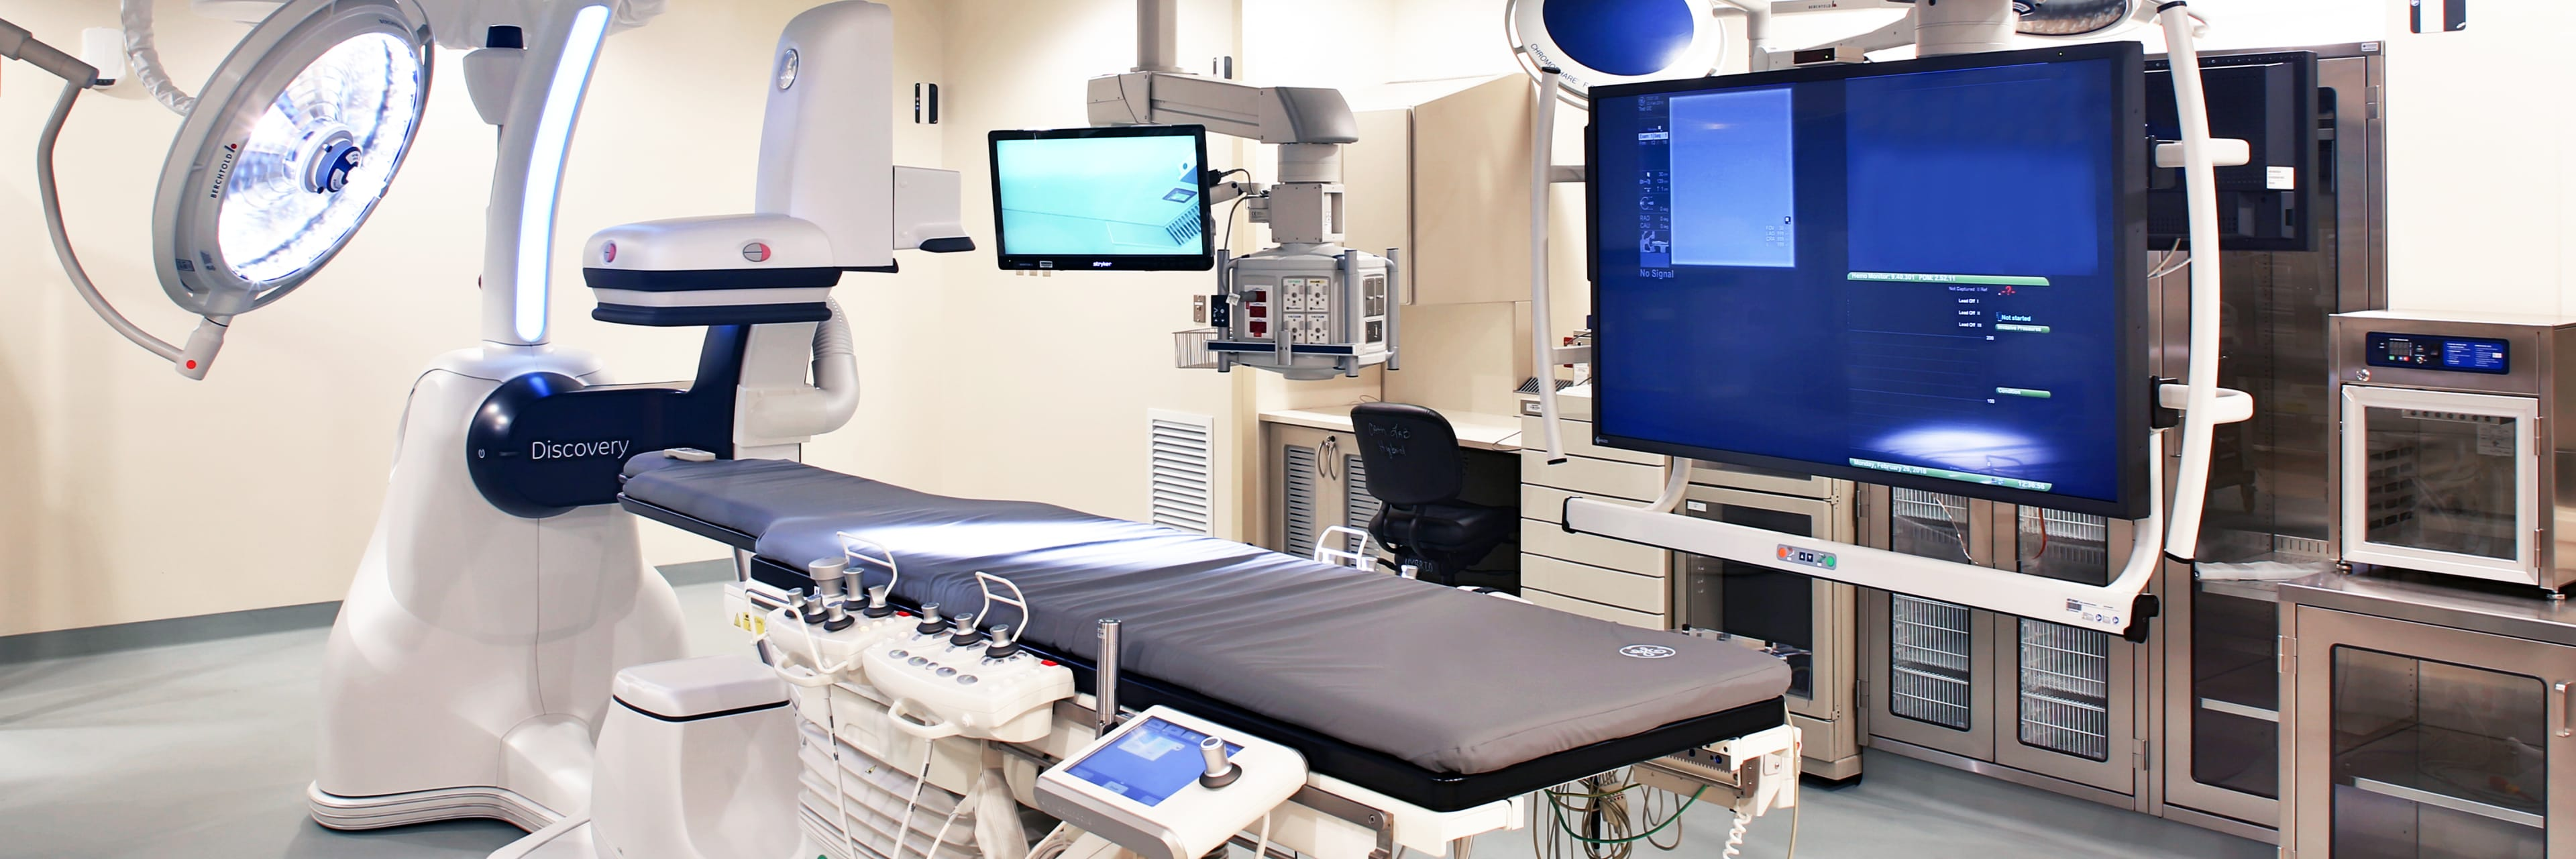 Baptist Heart hospital state-of-the-art hybrid structural lab and OR suite